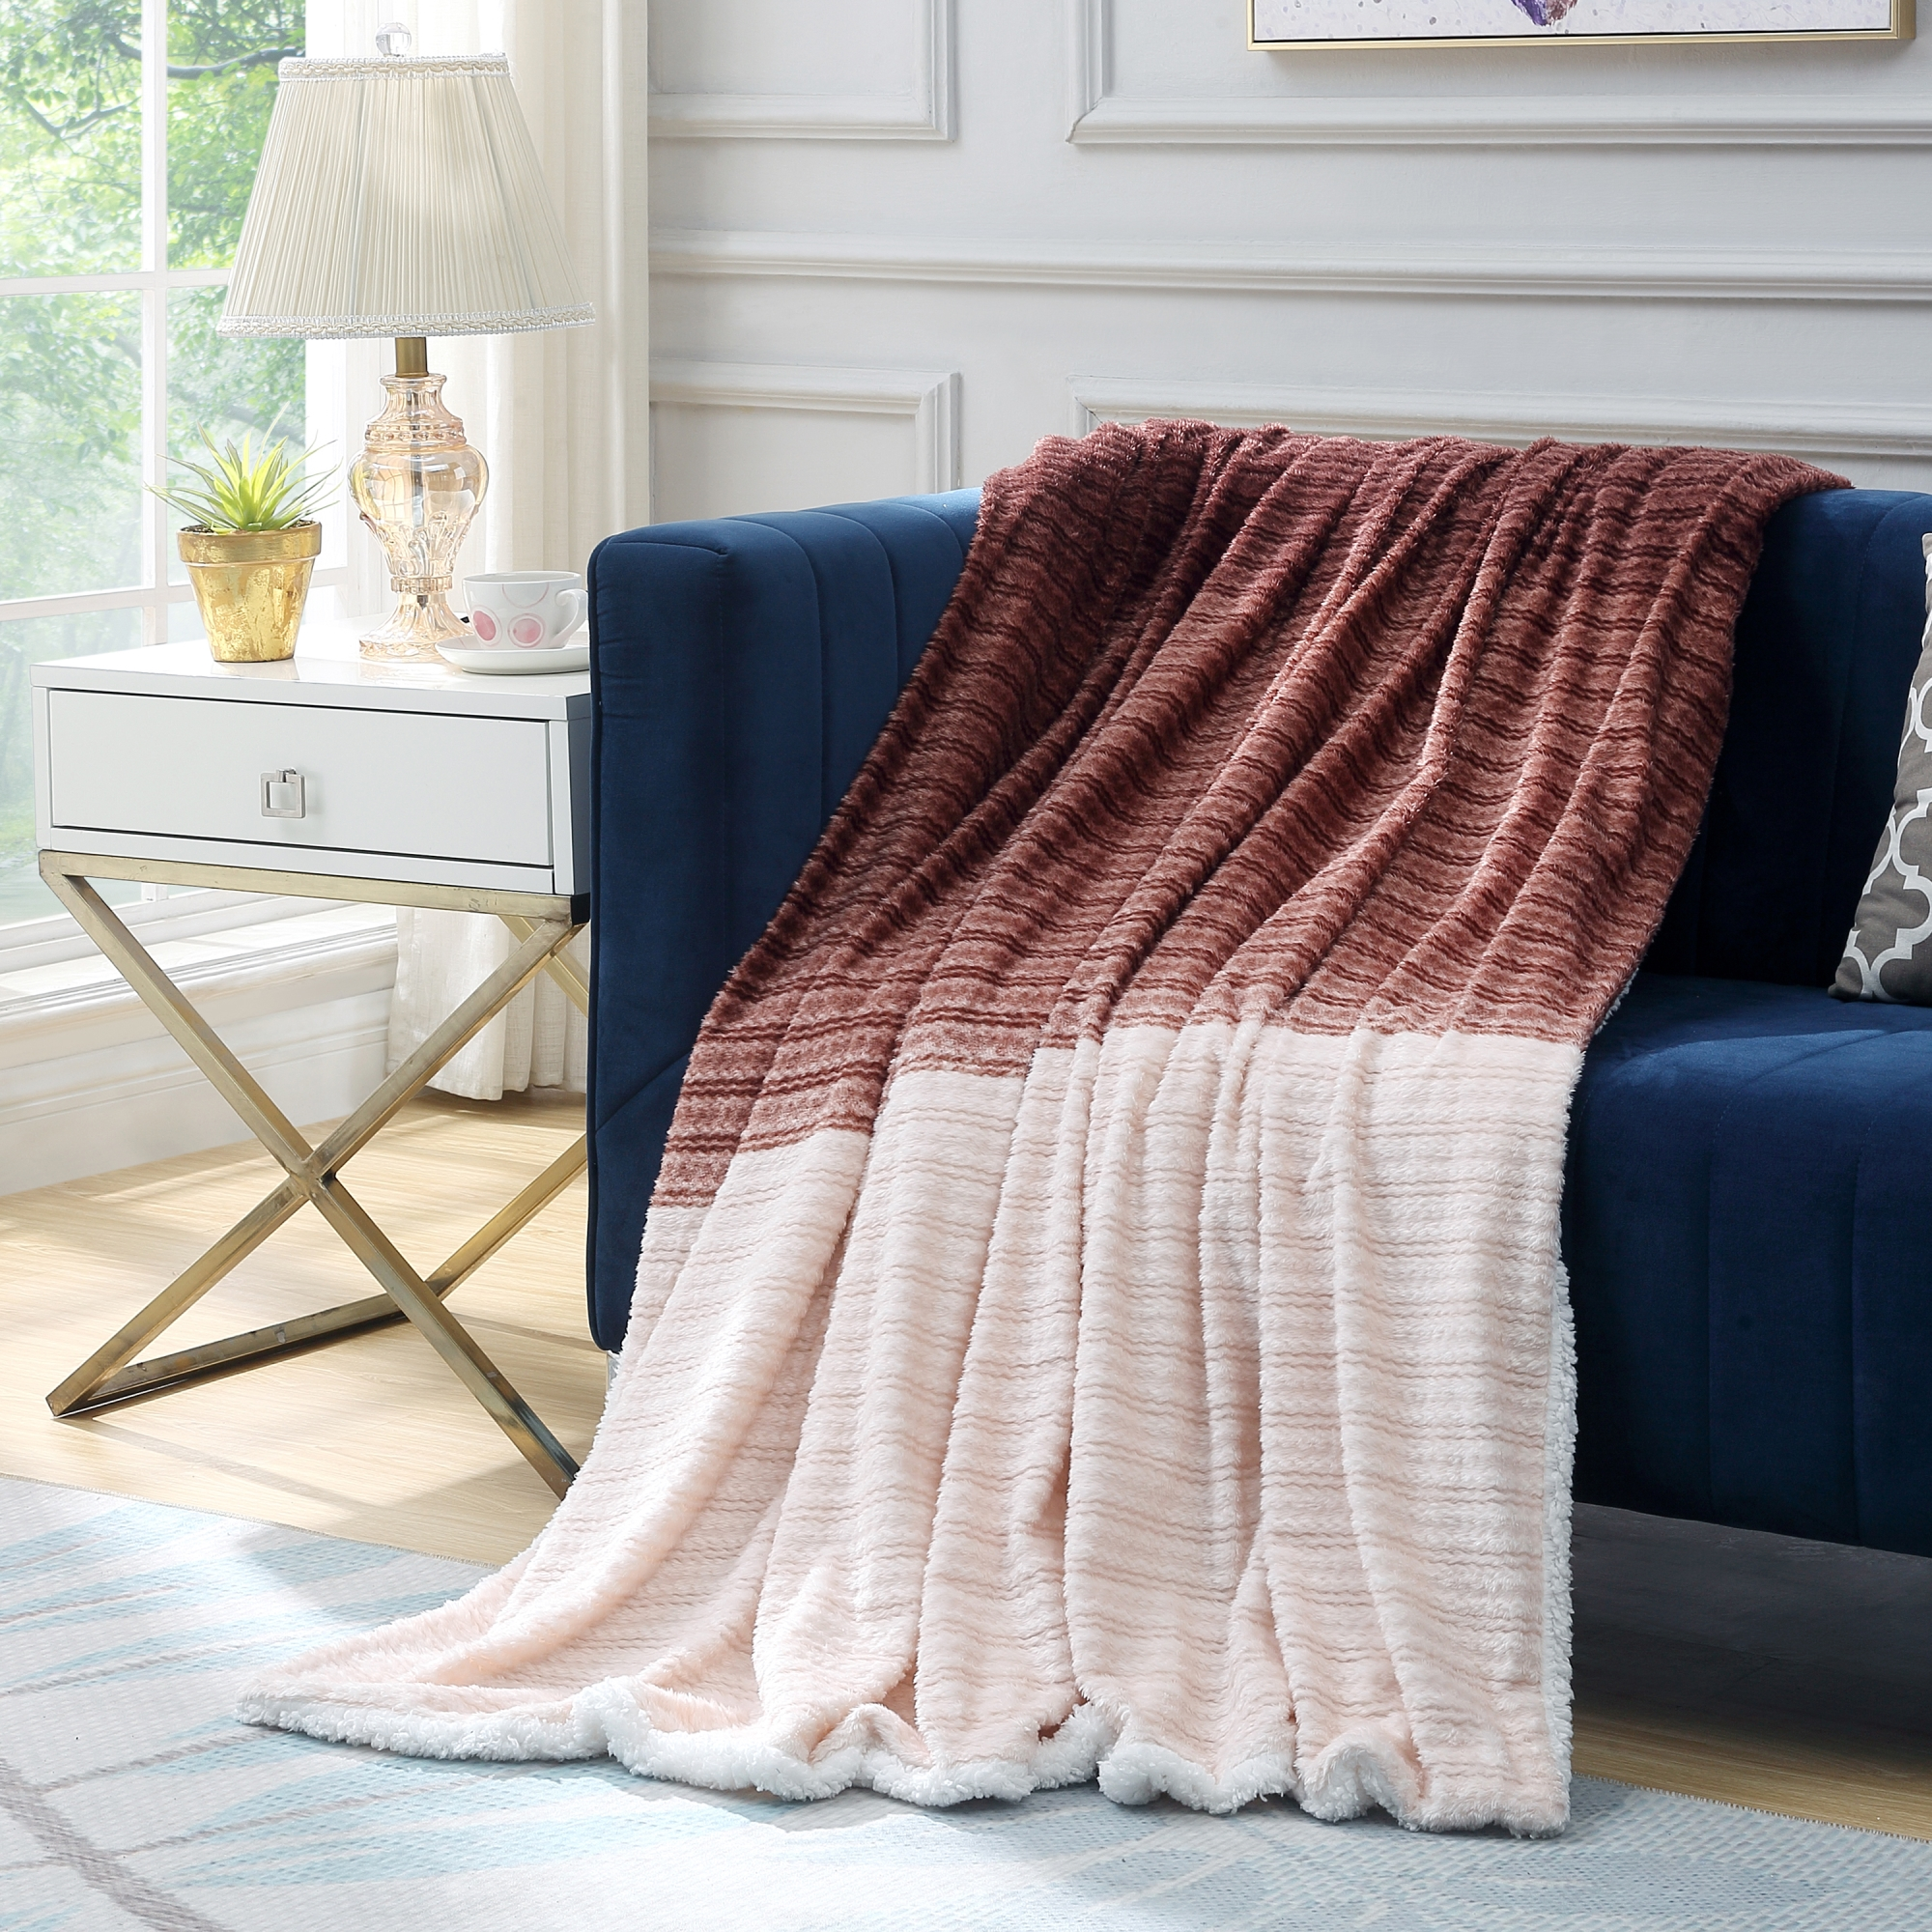 Cozy Tyme Brown 100% Polyester Throw Super Soft Cozy